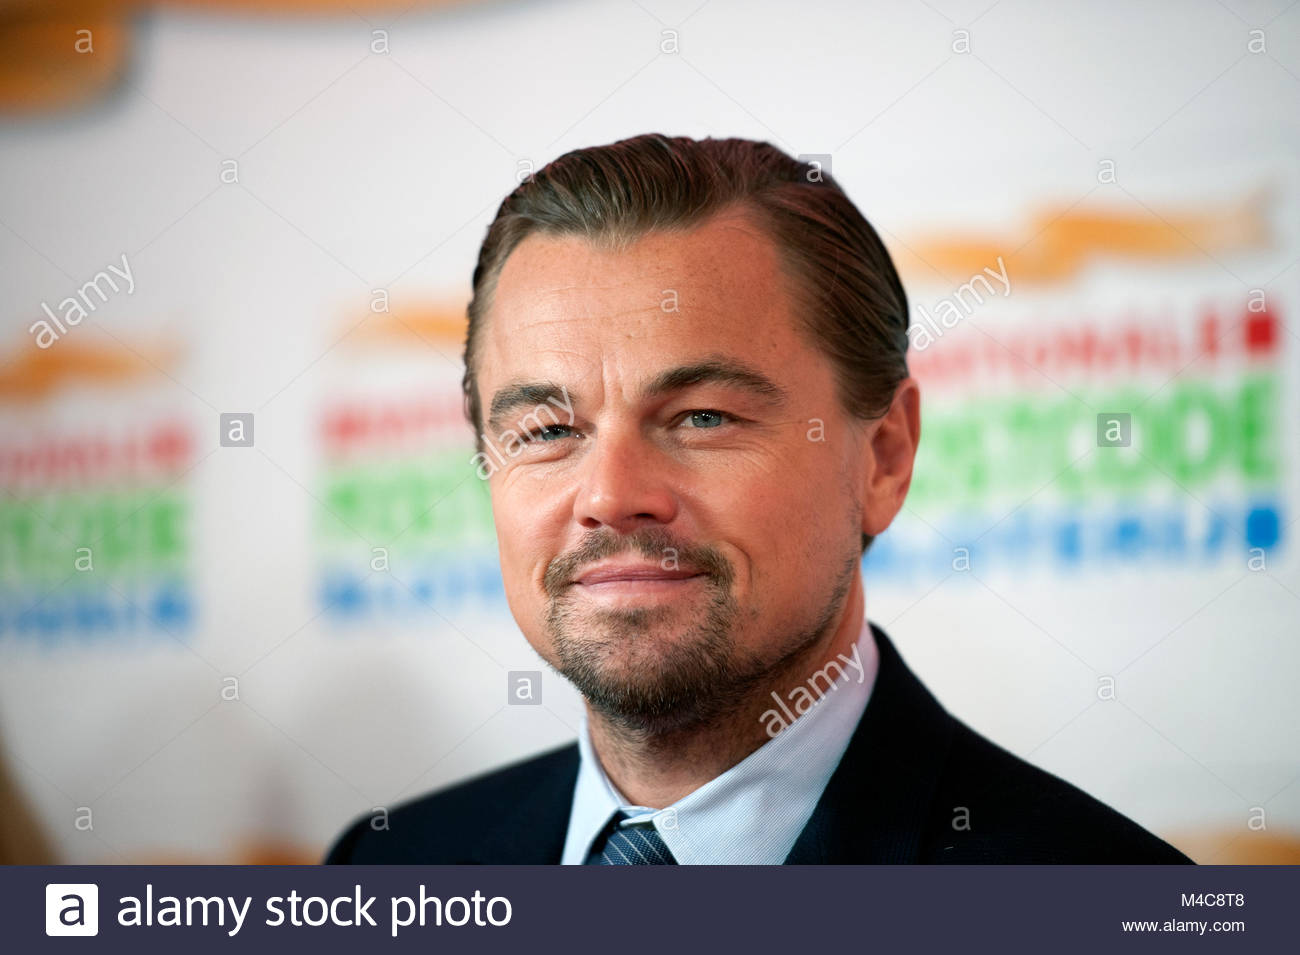 Amsterdam The Netherlands 15th February 2018 Goed Geld Gala Charity event Red Carpet.  Actor and environmental activist - Stock Image